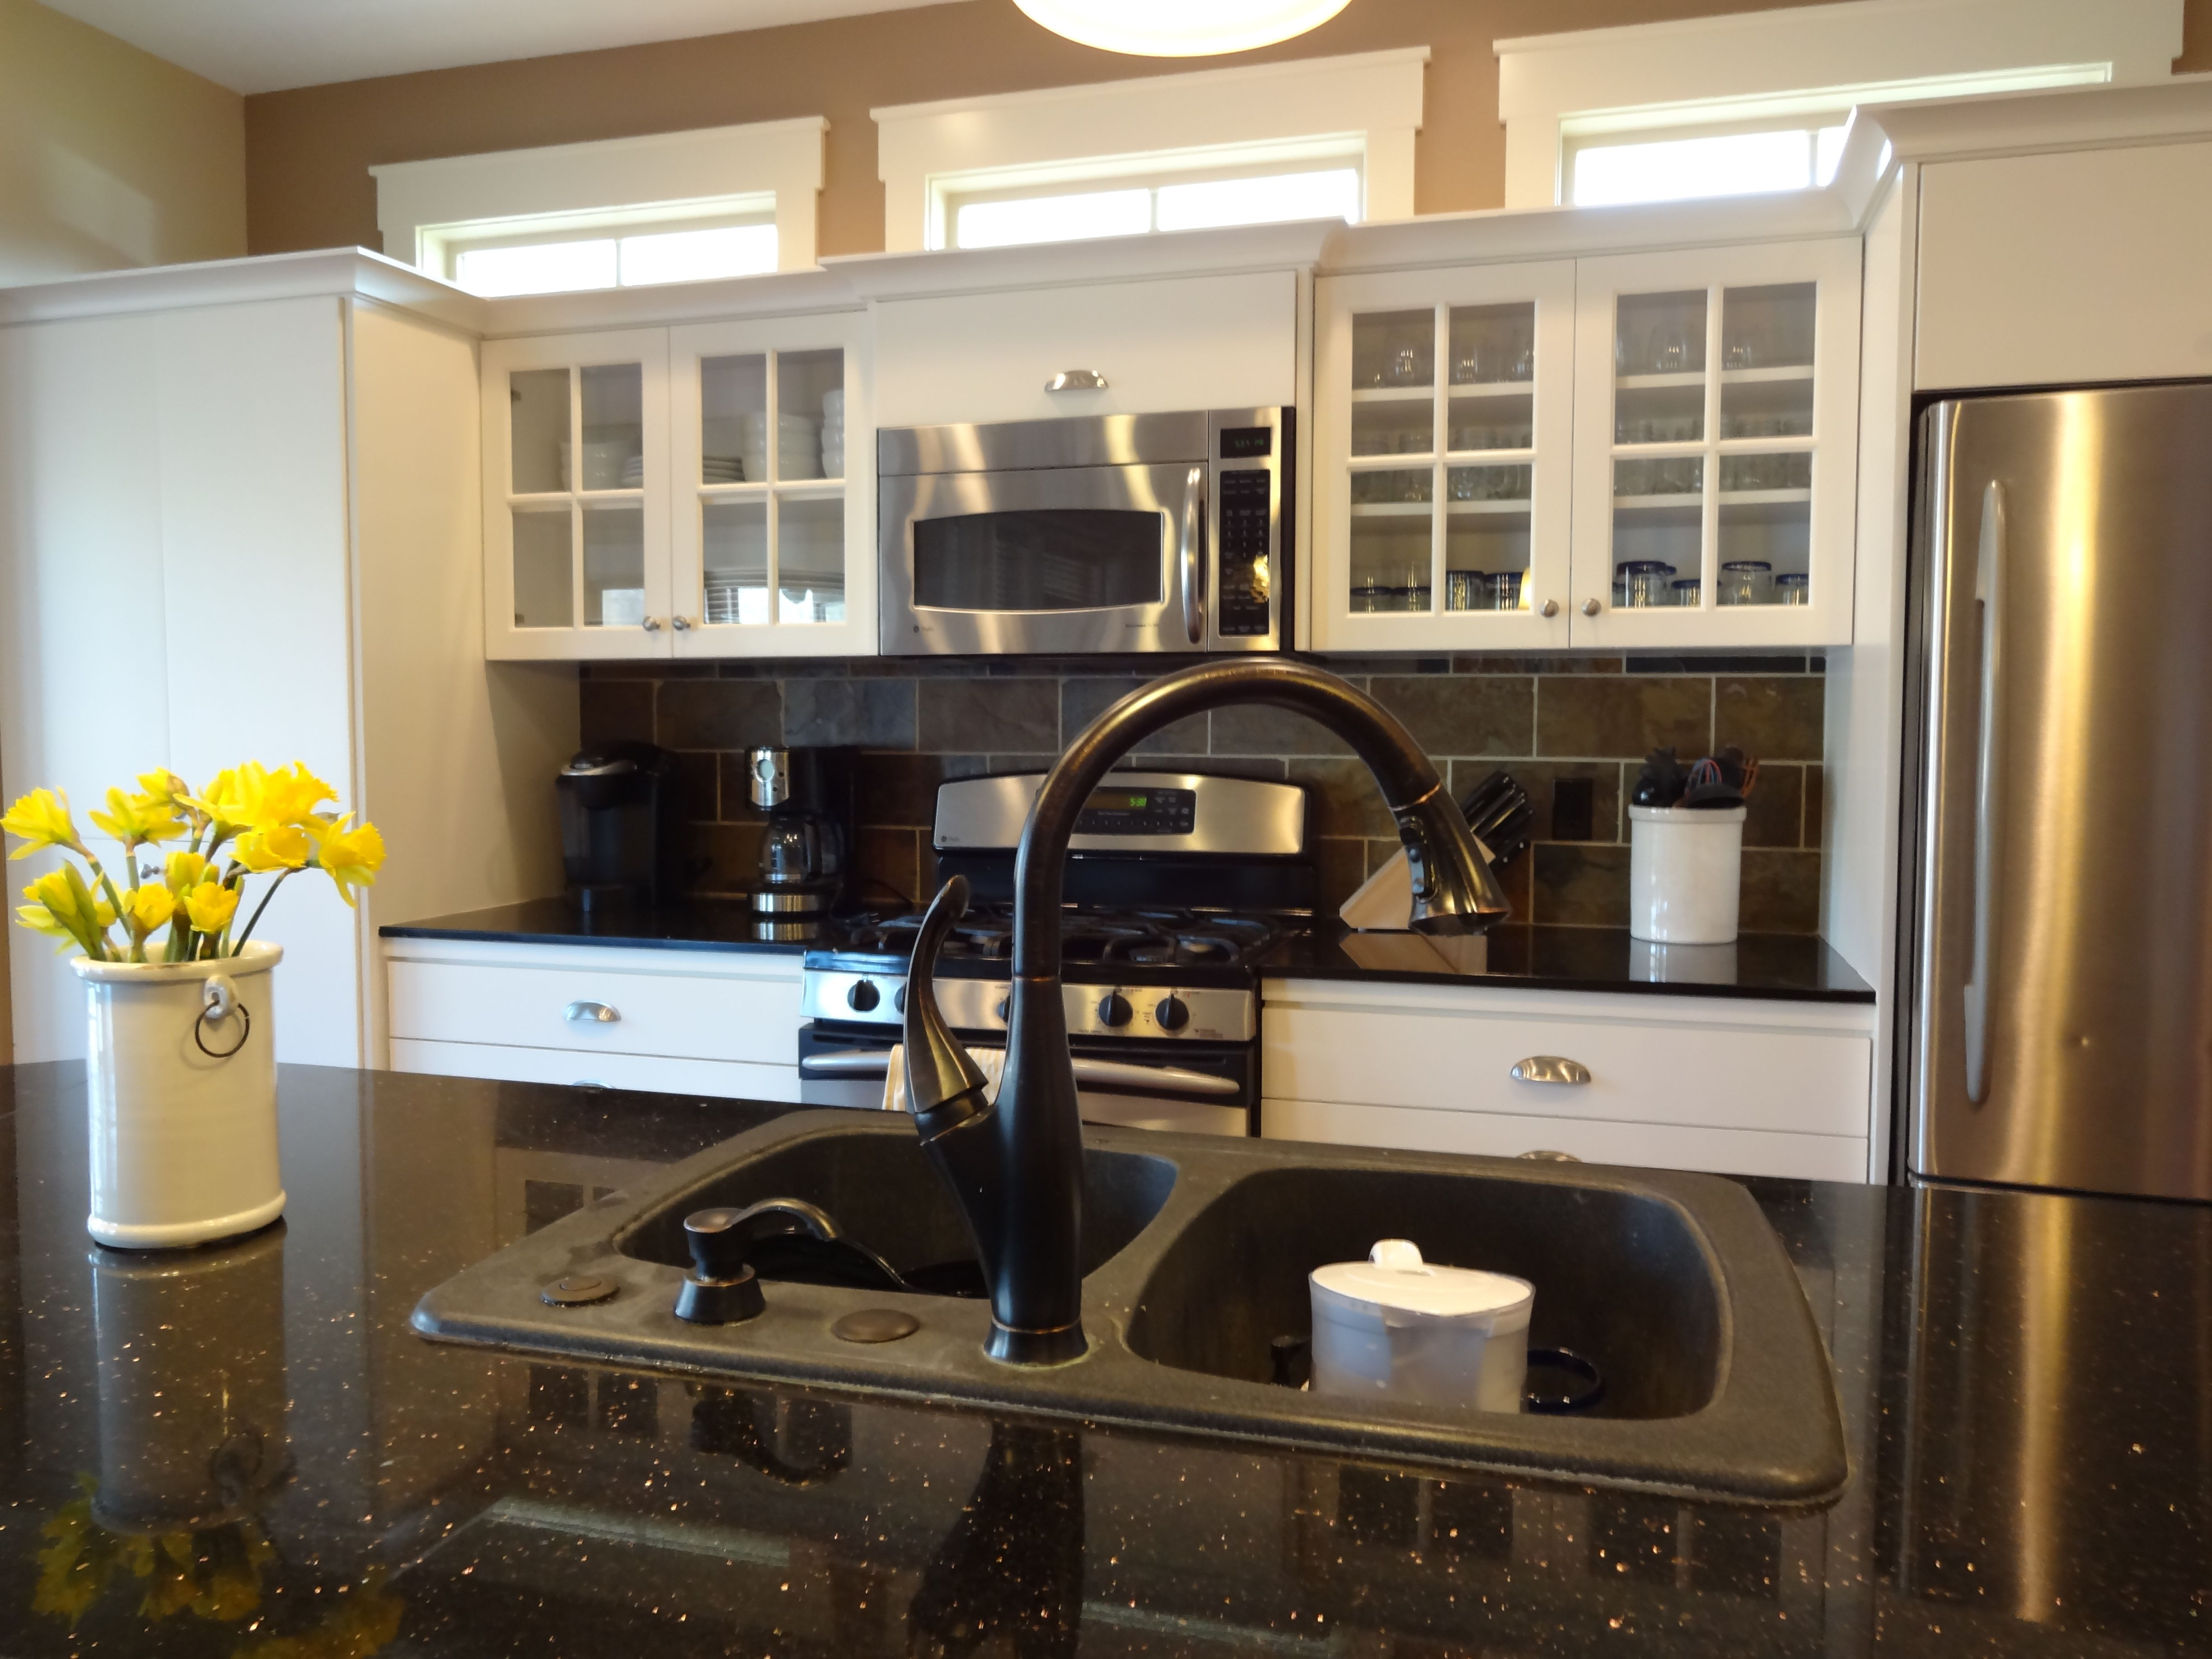 Refinished kitchen cabinets Dover White to match trim in ...